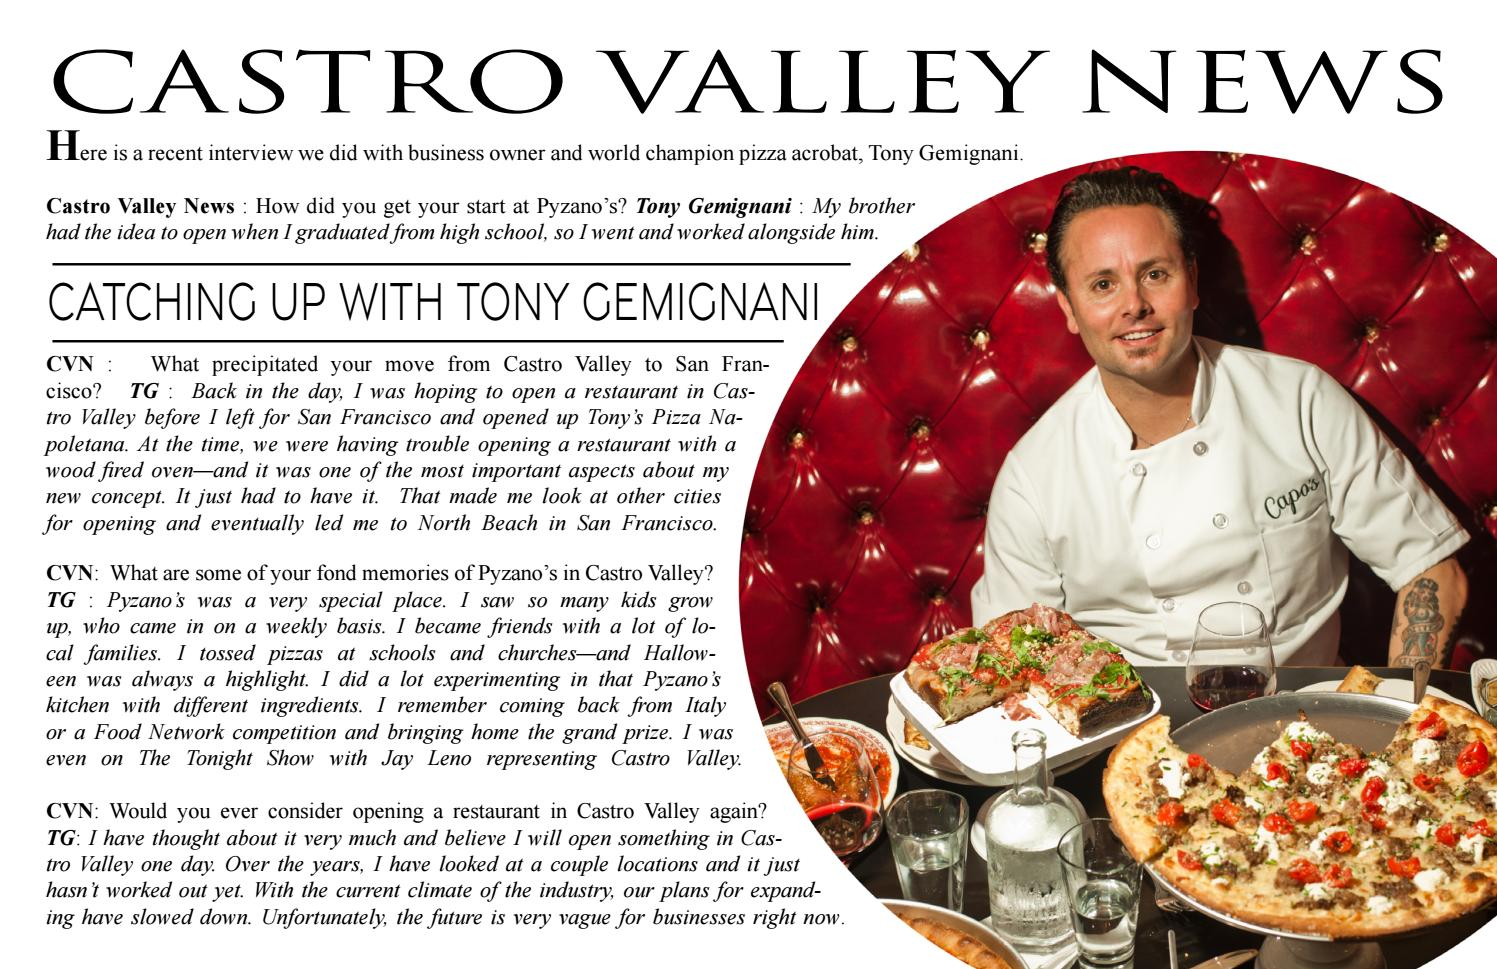 Castro Valley News Year 5 Number 3 V 38 By Castro Valley News Issuu